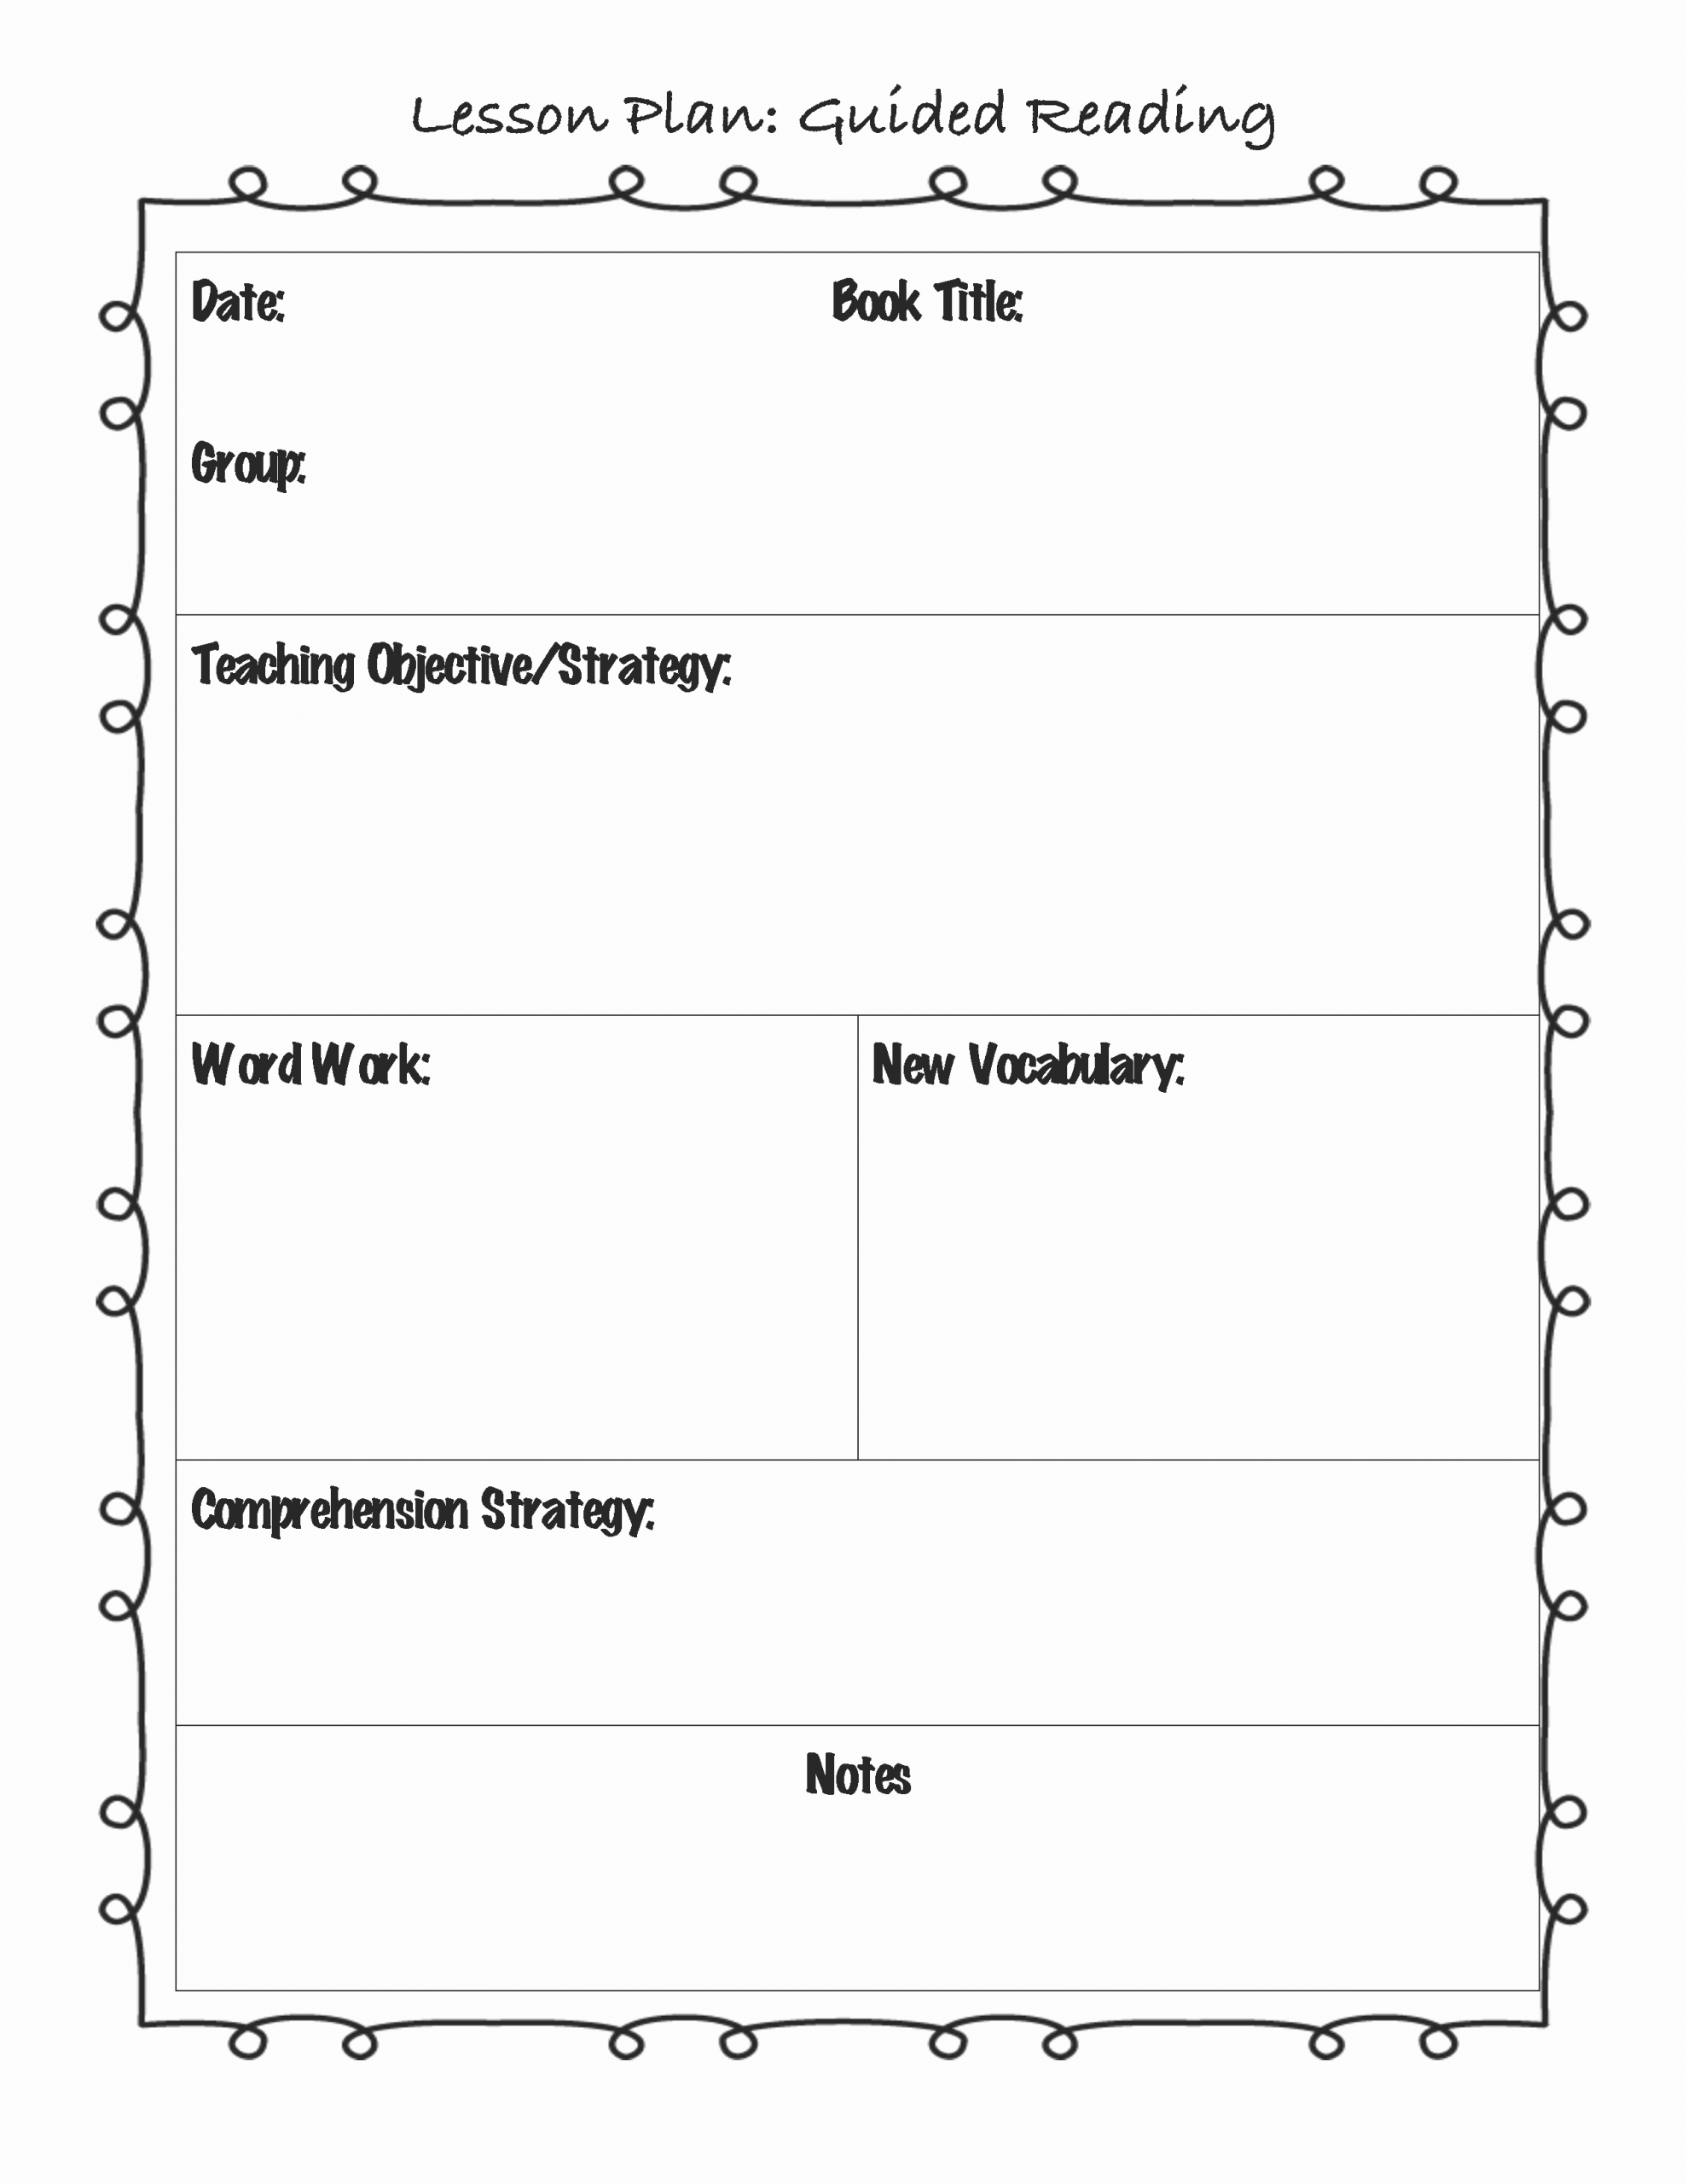 Lesson Plans Template Free Best Of Guided Reading Lesson Plan Template